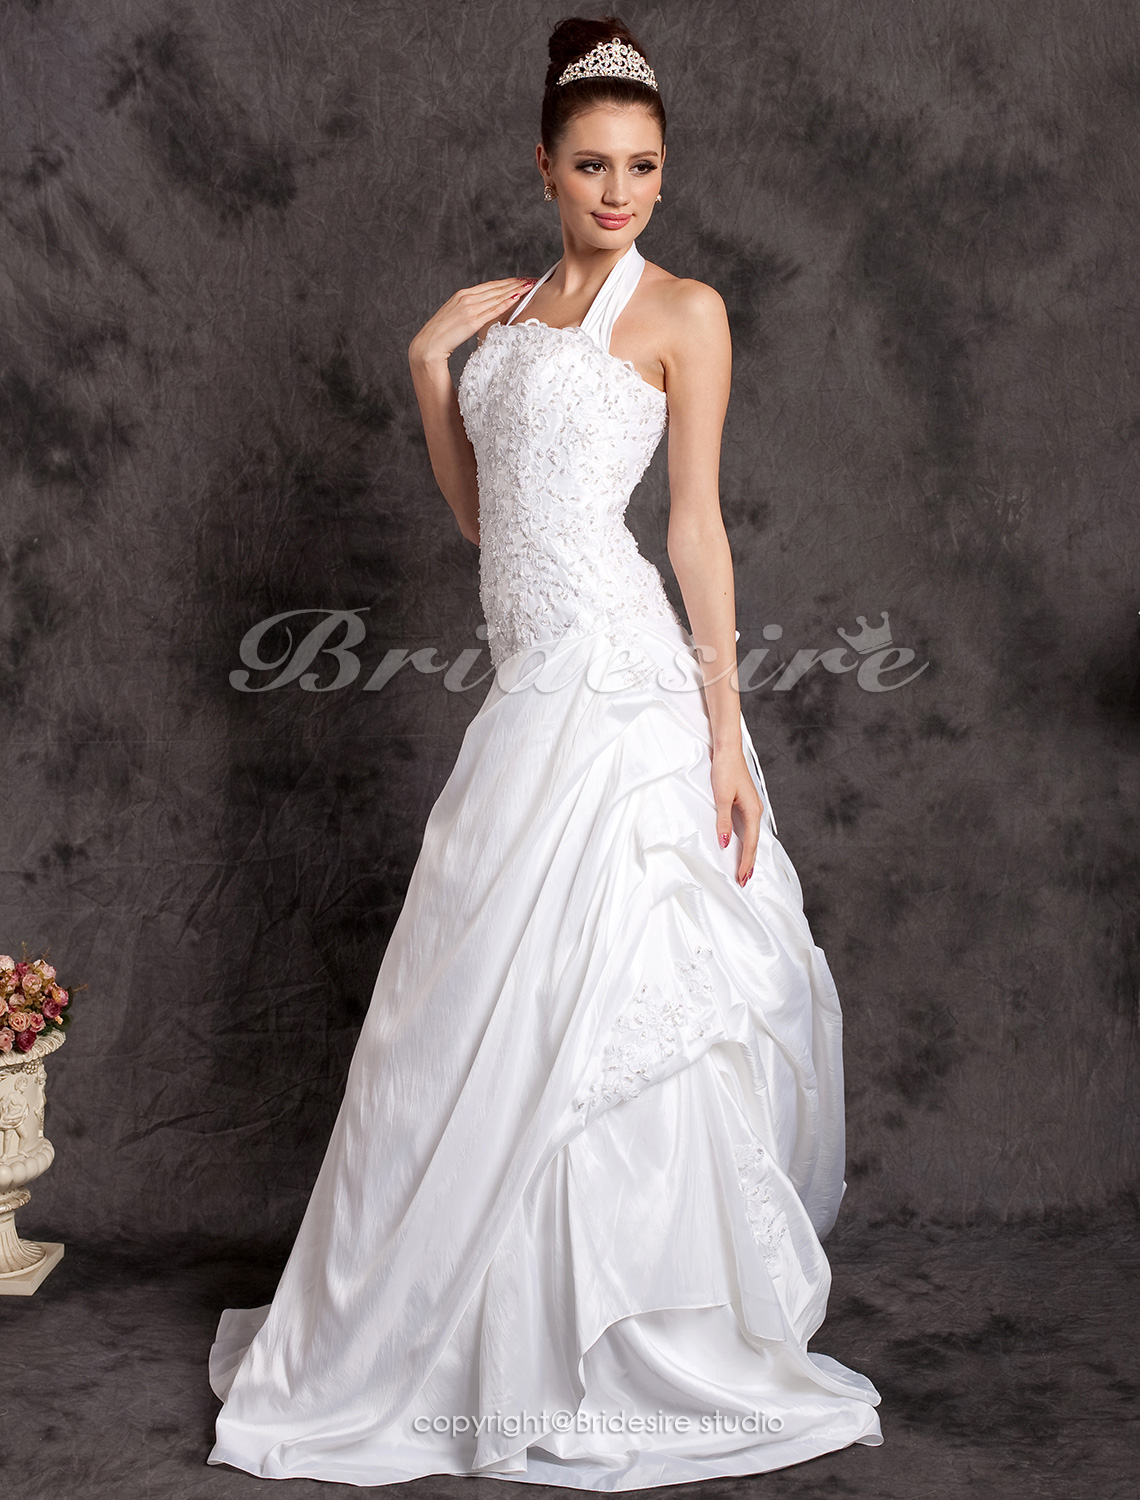 A-line Court Train Halter Wedding Dress With Beaded Appliques